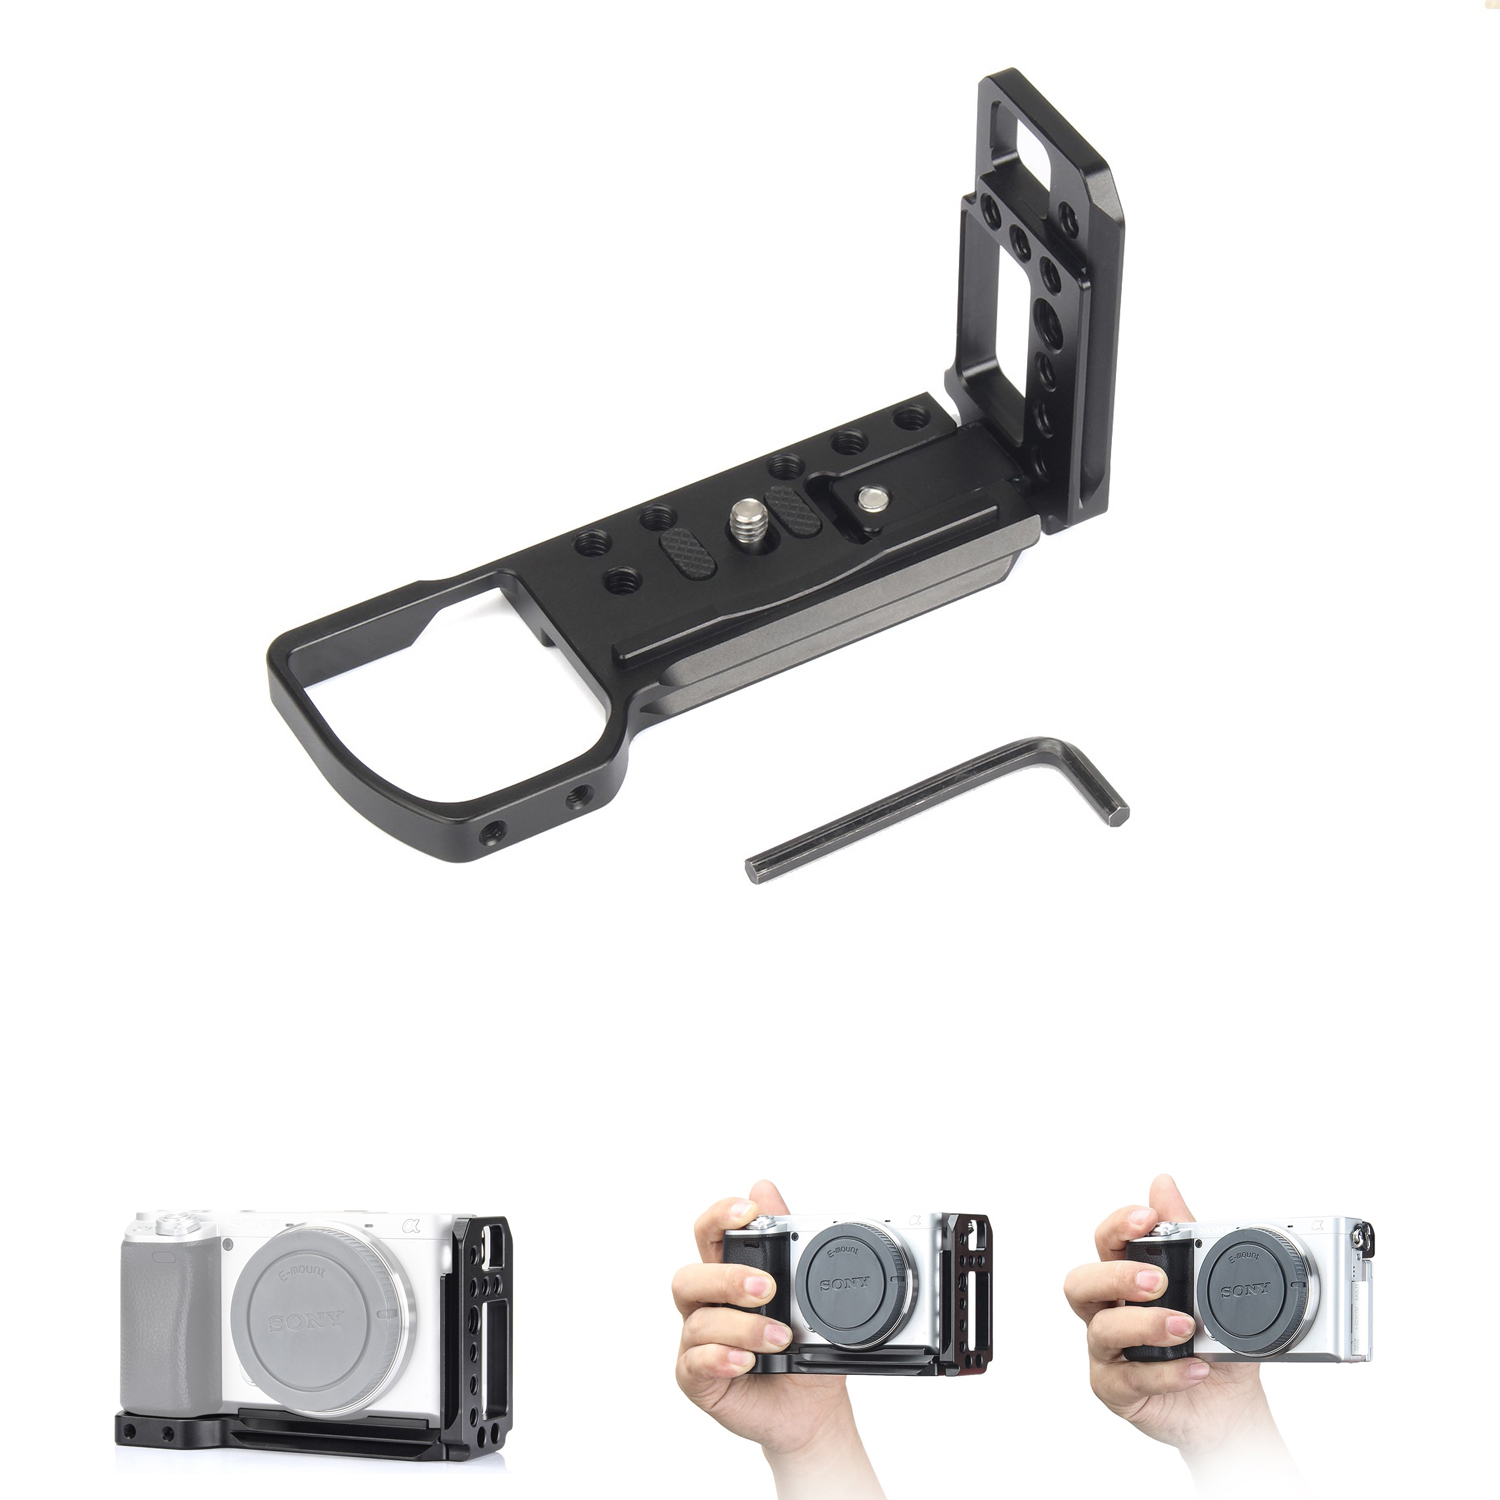 Quick Release Plate EachRig L-Bracket camera cage for Sony a6300,a6400, a6000,with Arca-Type compatible dovetail plate